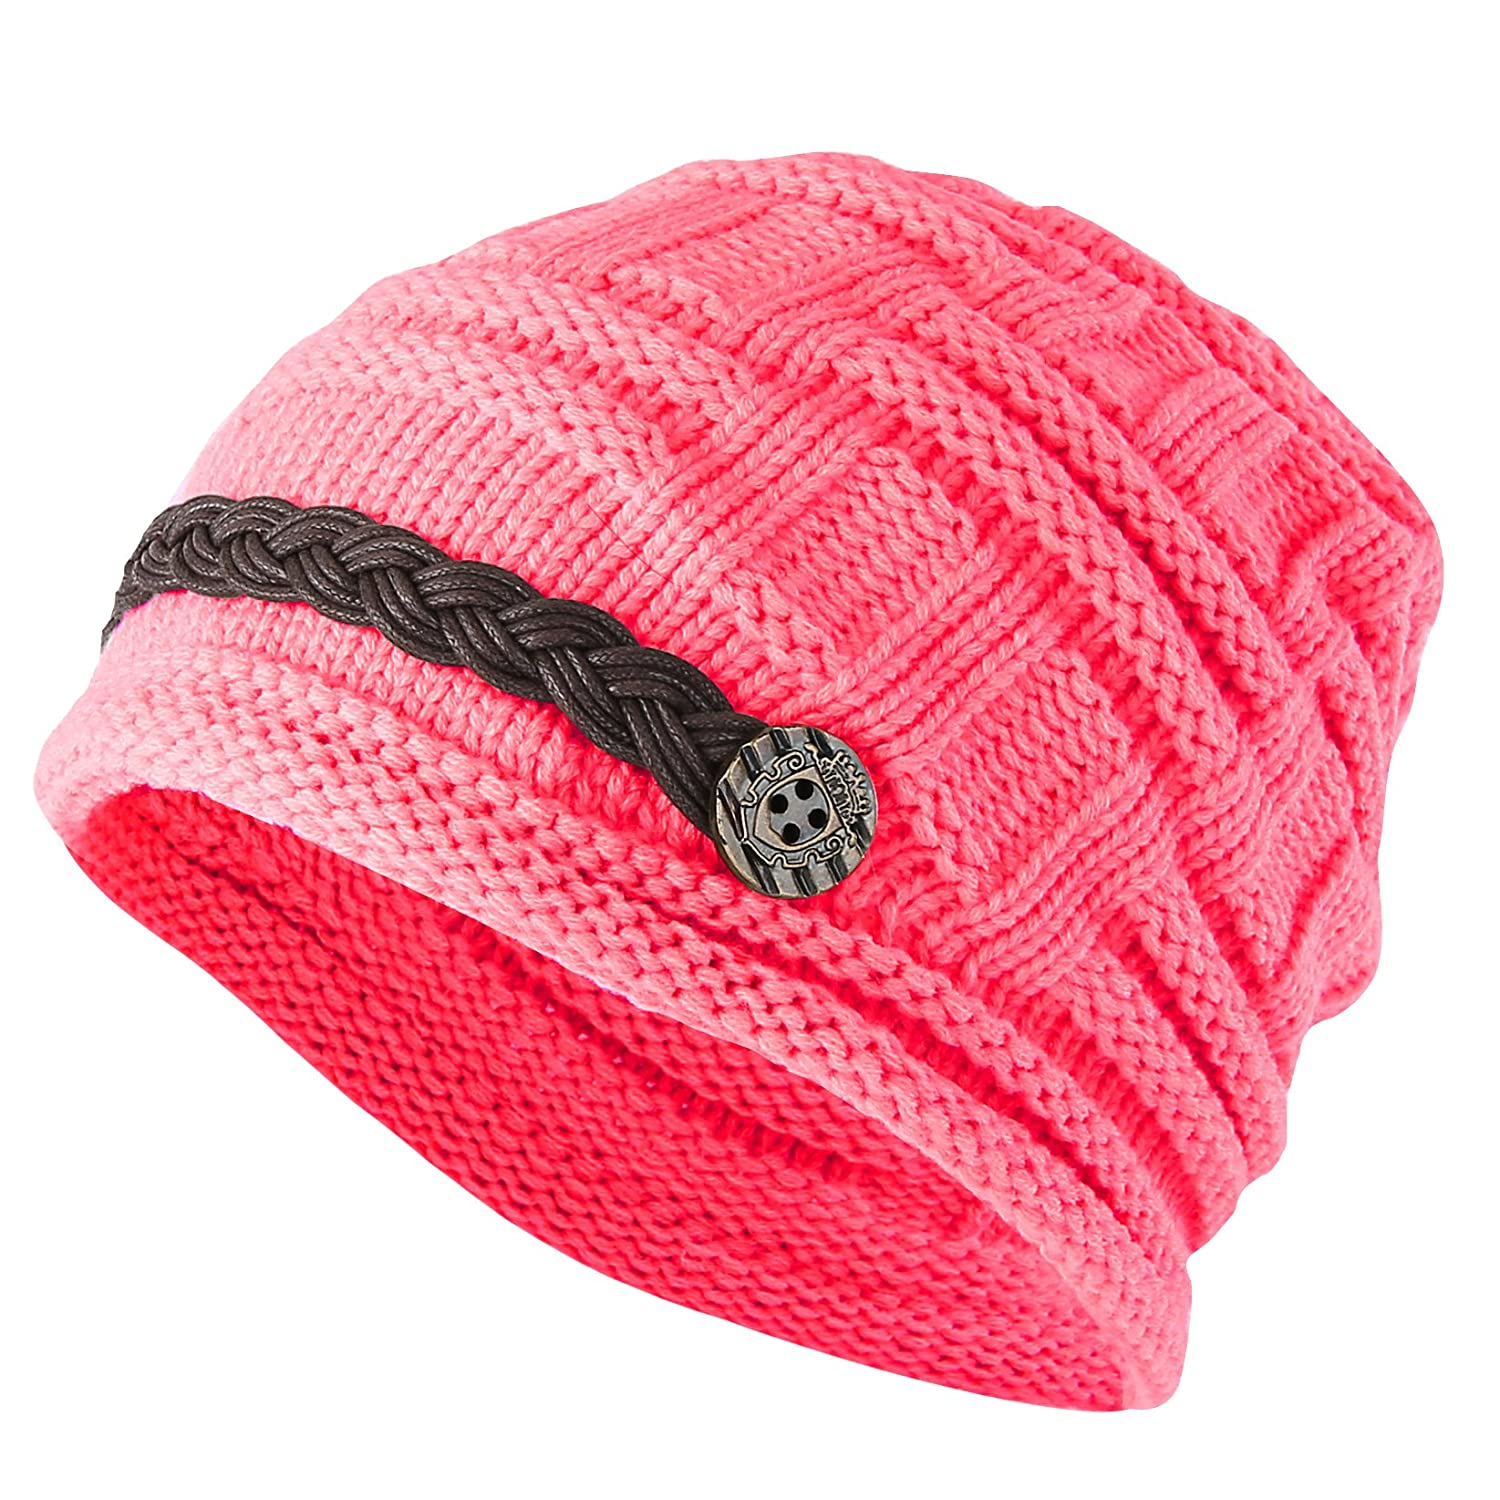 841f740993d5 Women Winter Beanie Cabled Checker Pattern Knit Hat Button Strap Cap